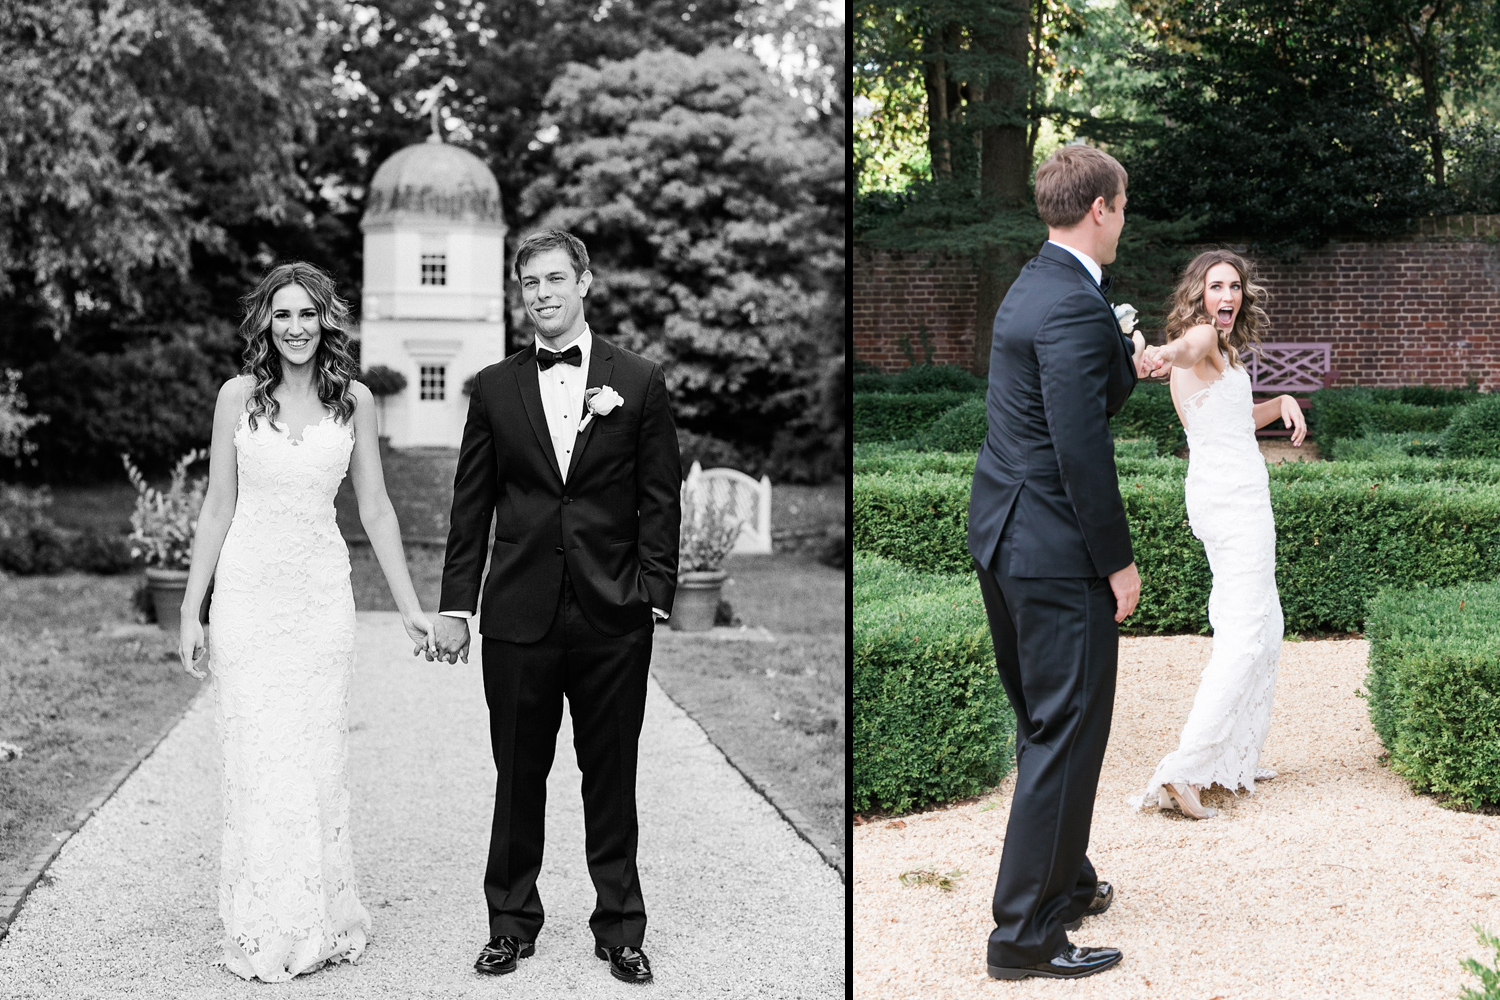 image of bride and groom at William Paca House in Annapolis Maryland wedding reception